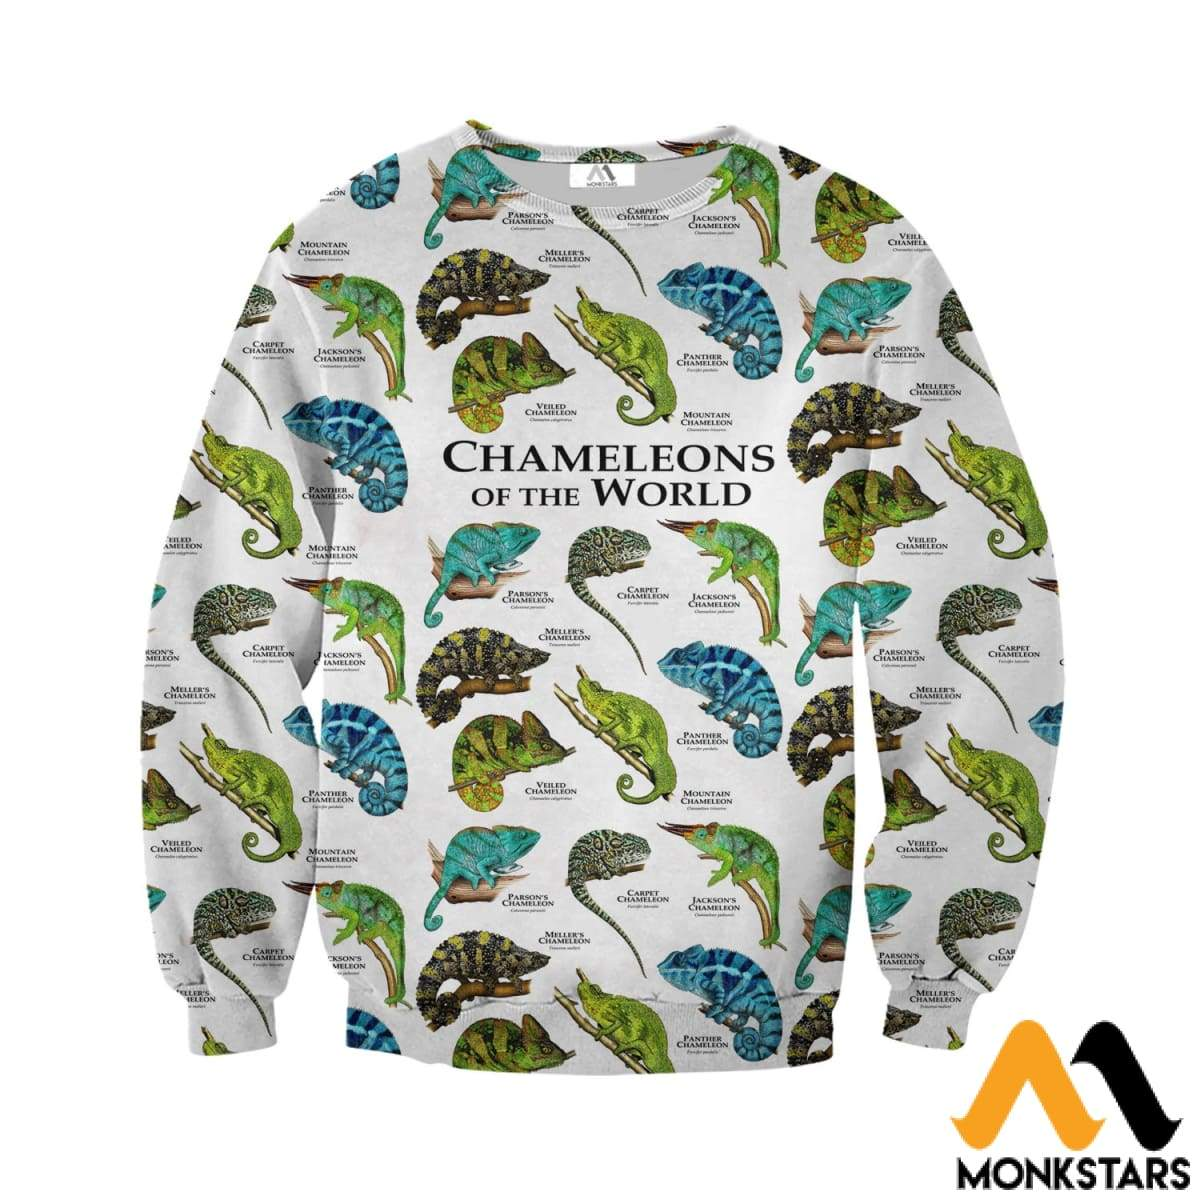 94a89a5a8ff Chameleons on the World 3D All Over Printed Shirts For Men   Women ...